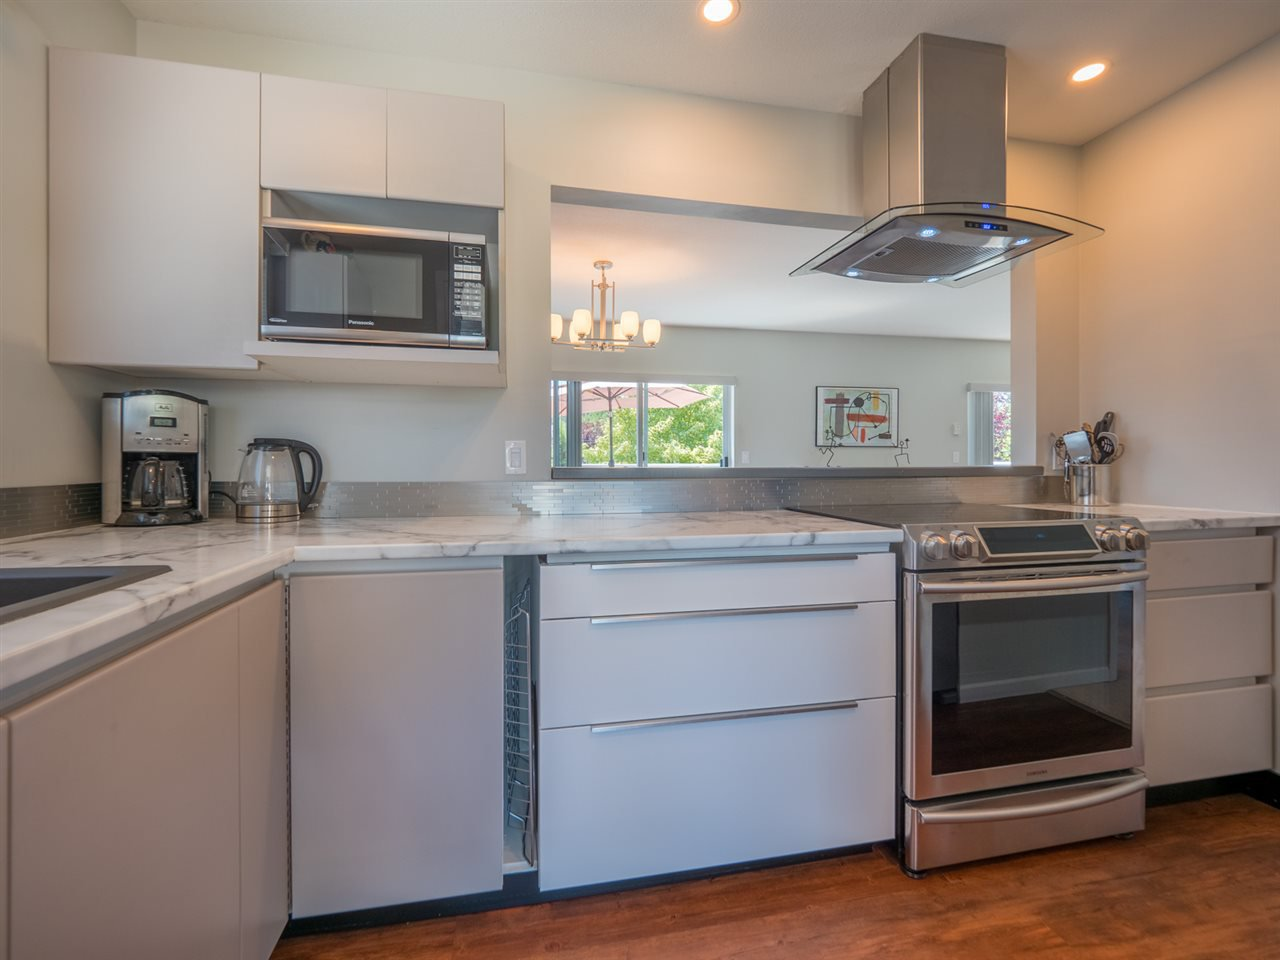 """Photo 6: Photos: 16 5630 TRAIL Avenue in Sechelt: Sechelt District Townhouse for sale in """"HIGHPOINT"""" (Sunshine Coast)  : MLS®# R2382780"""